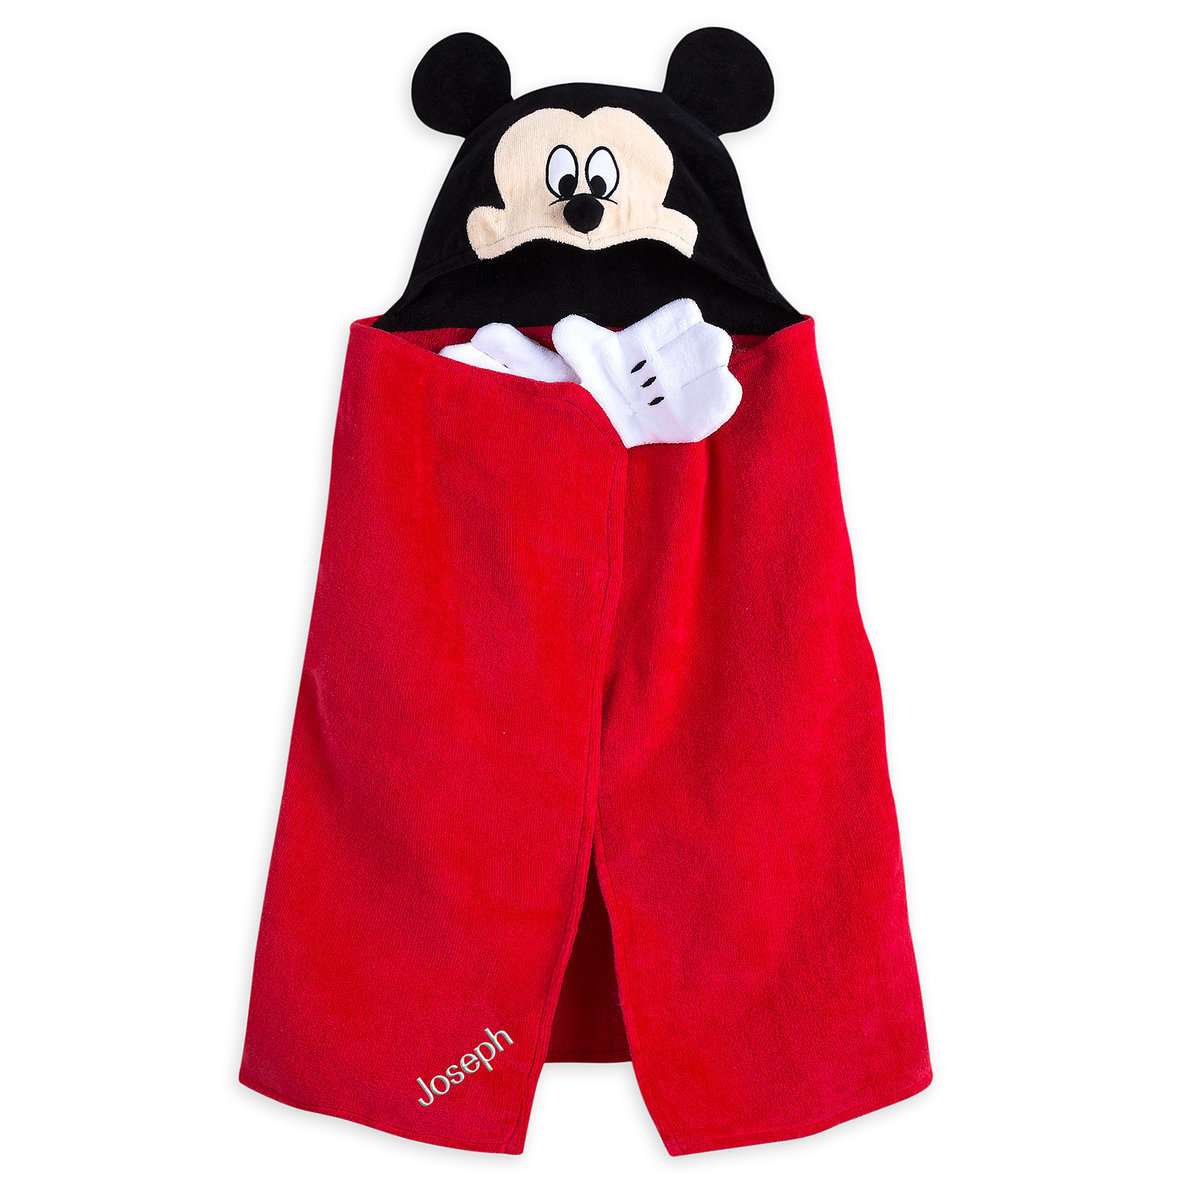 ◎送料込み◎  Mickey Mouse Hooded Towel for Baby -